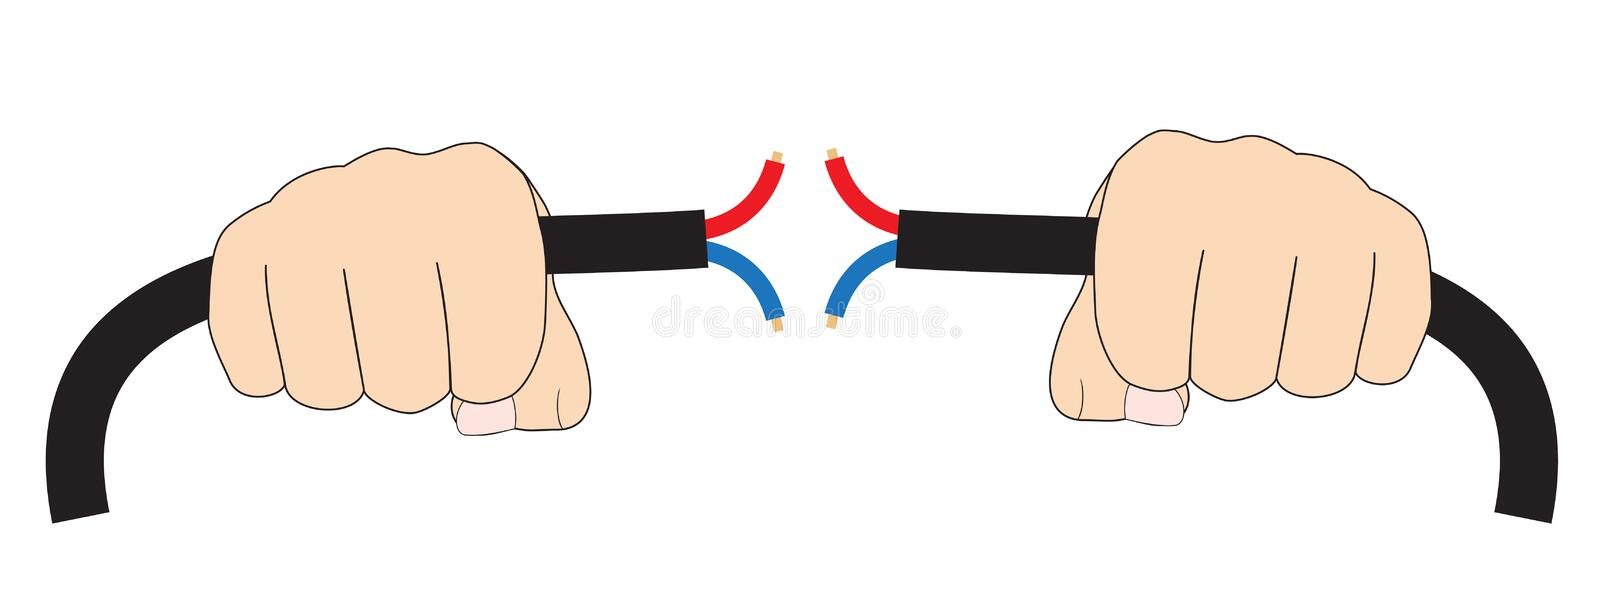 Hands with electric cable royalty free illustration